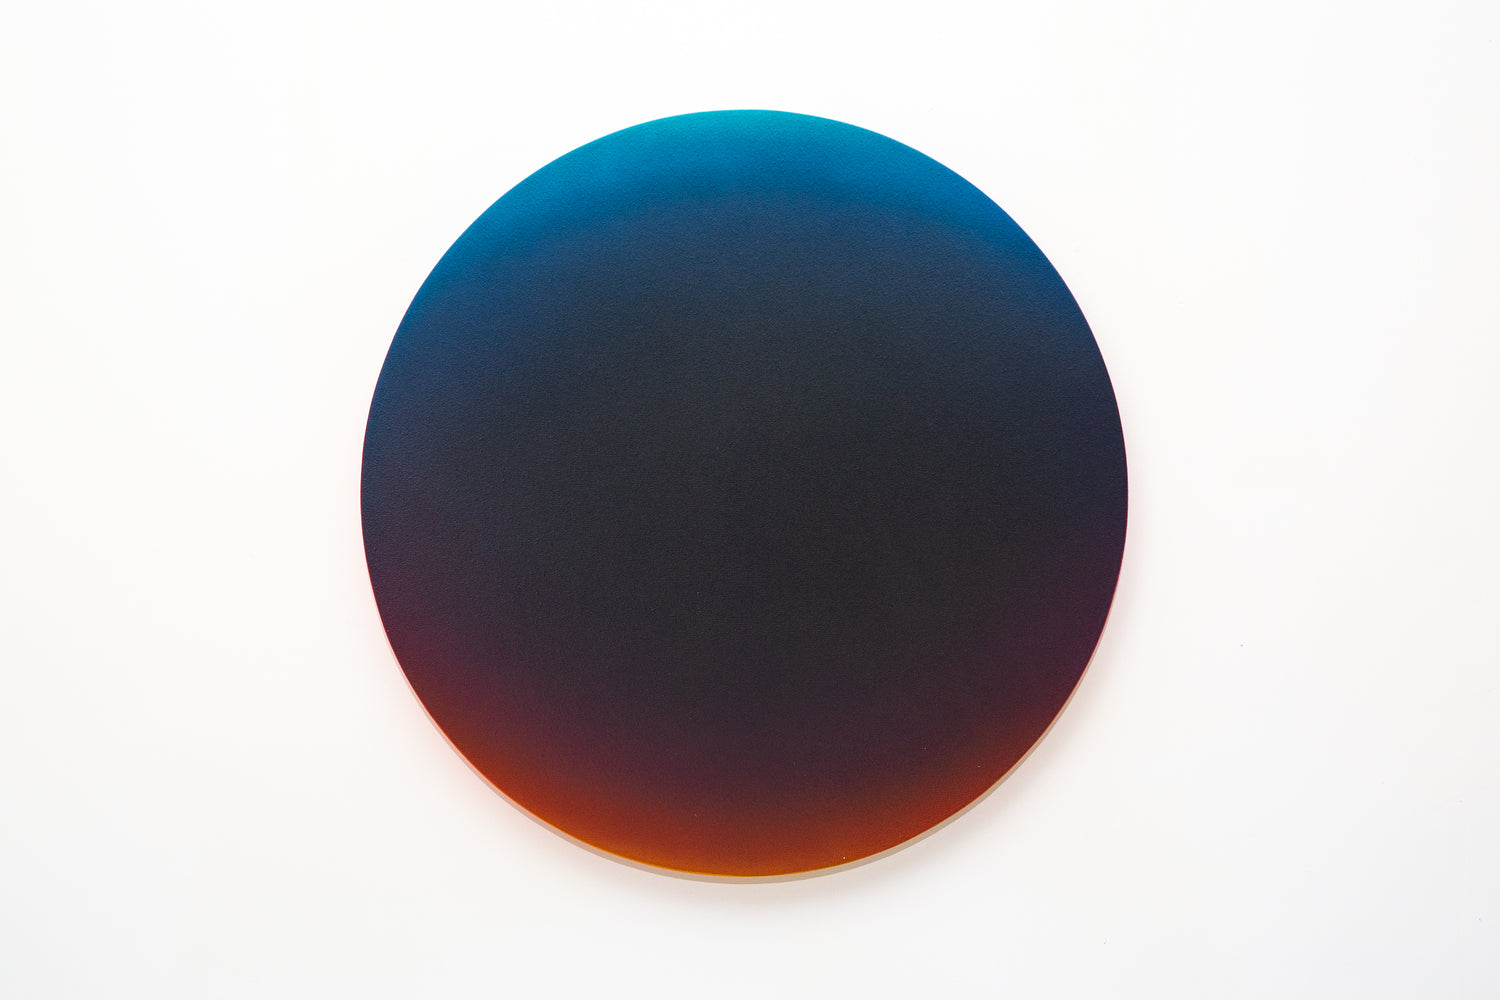 Jan Kálab: Black Gradient 1, 2018